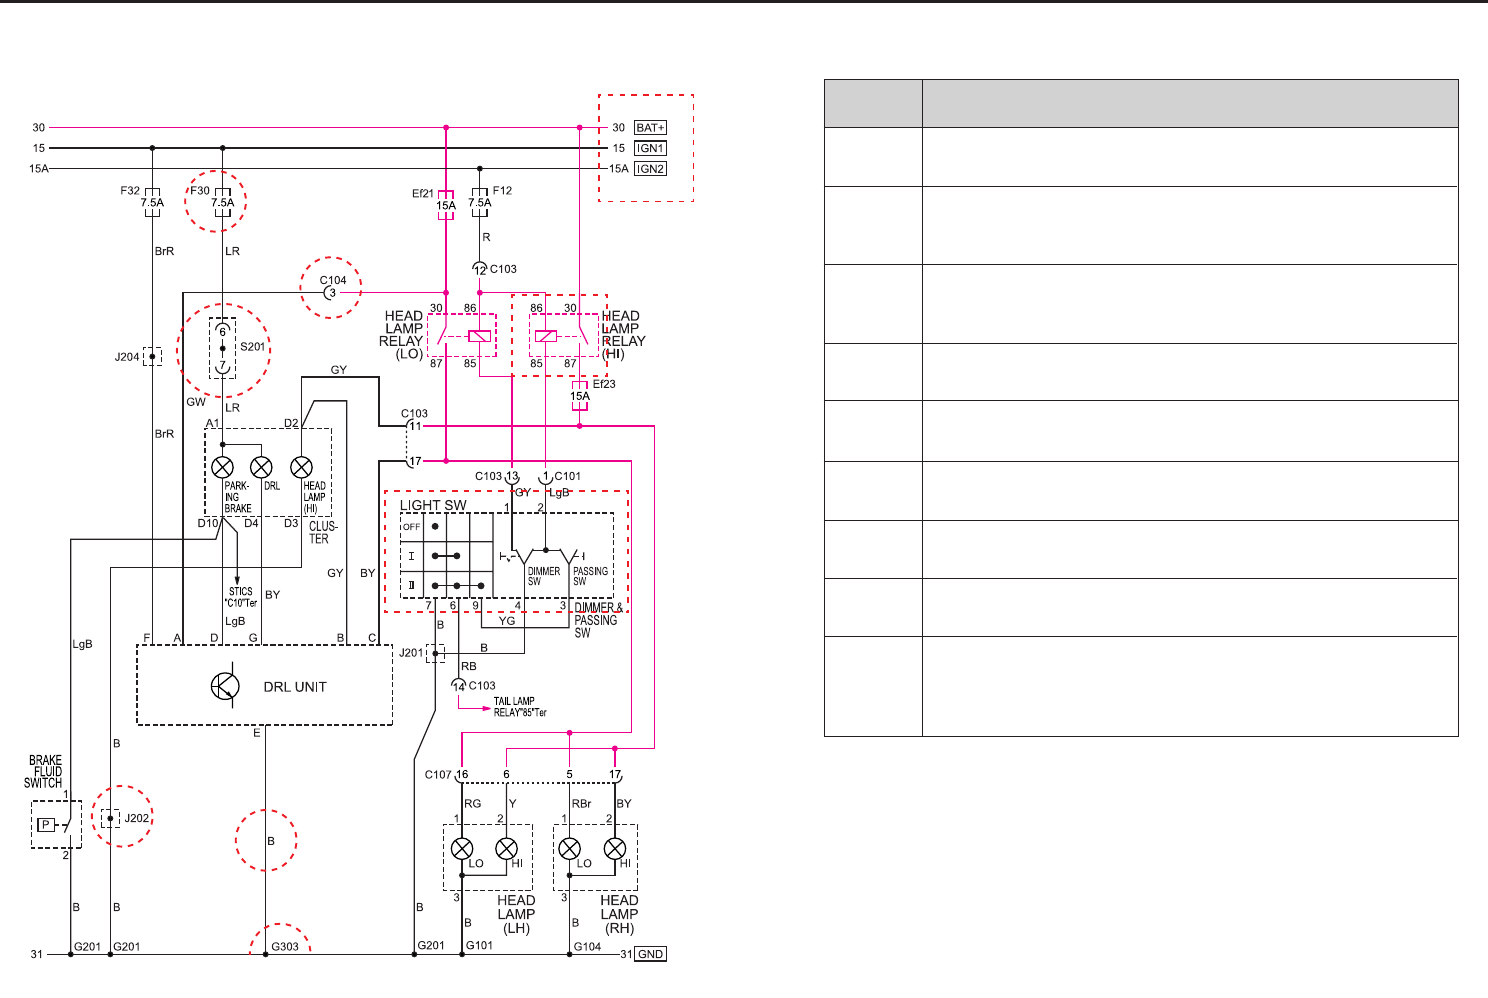 Daewoo Musso Wiring Diagram - Diagram Design Sources electrical-solid -  electrical-solid.nius-icbosa.itnius-icbosa.it